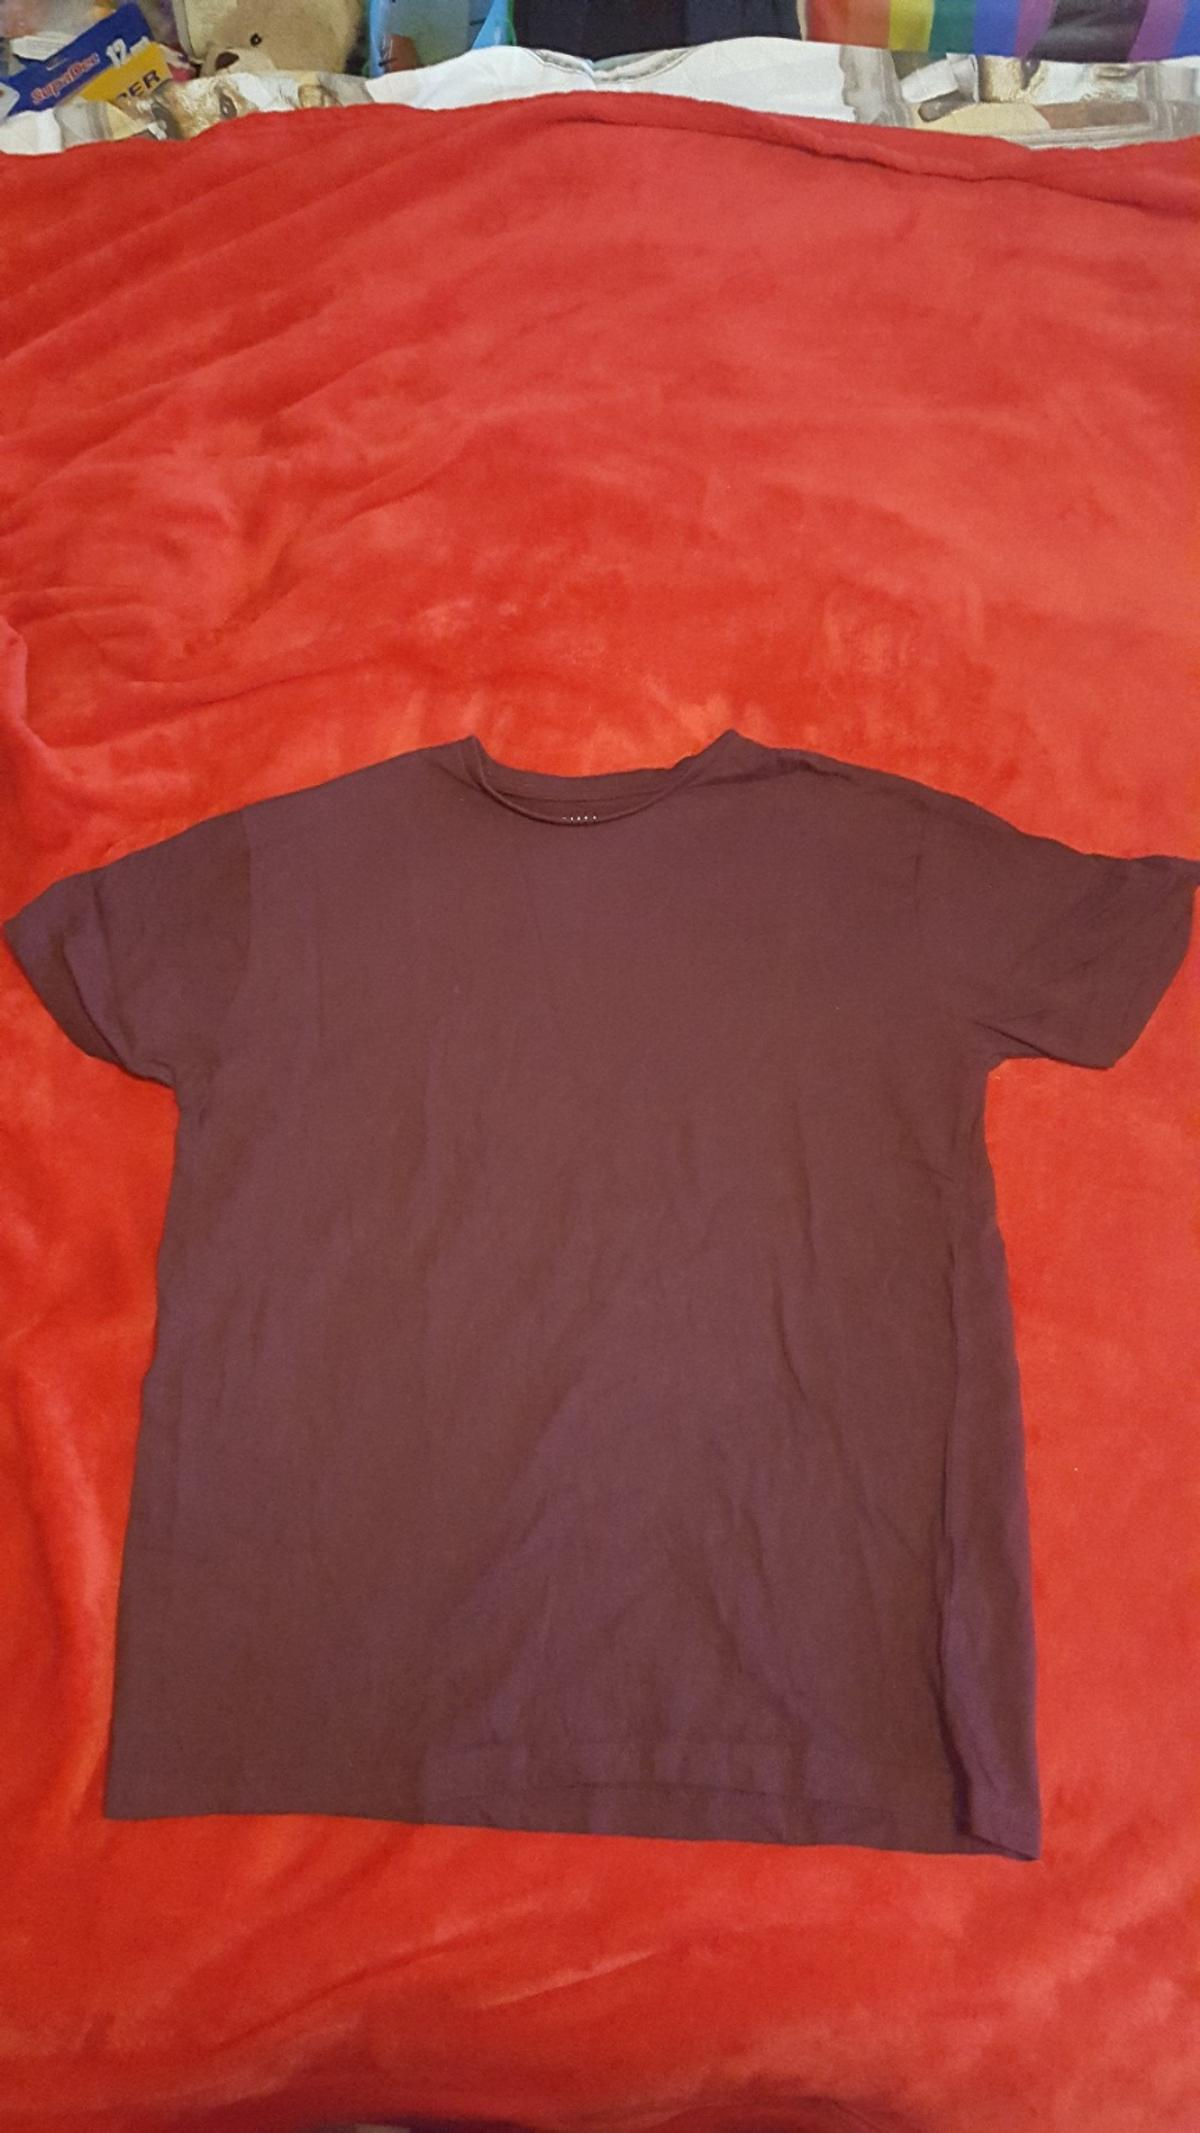 Size XS t-shirt from Primark. Dark red all over (no pattern/design). Has been worn, but is washed and in good condition.